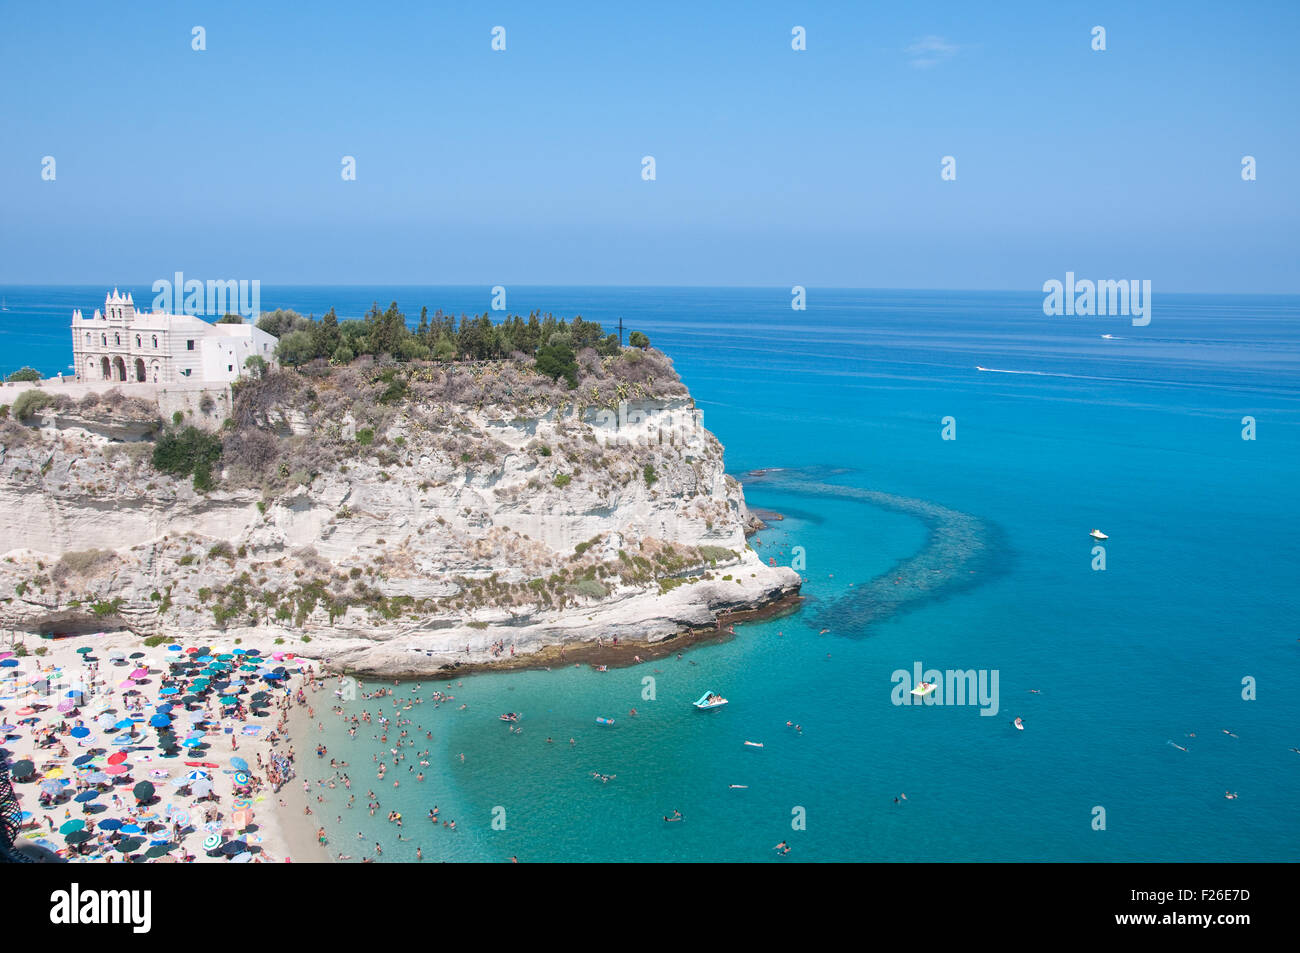 Top view of the church located on the island of Tropea, Calabria Italy Stock Photo